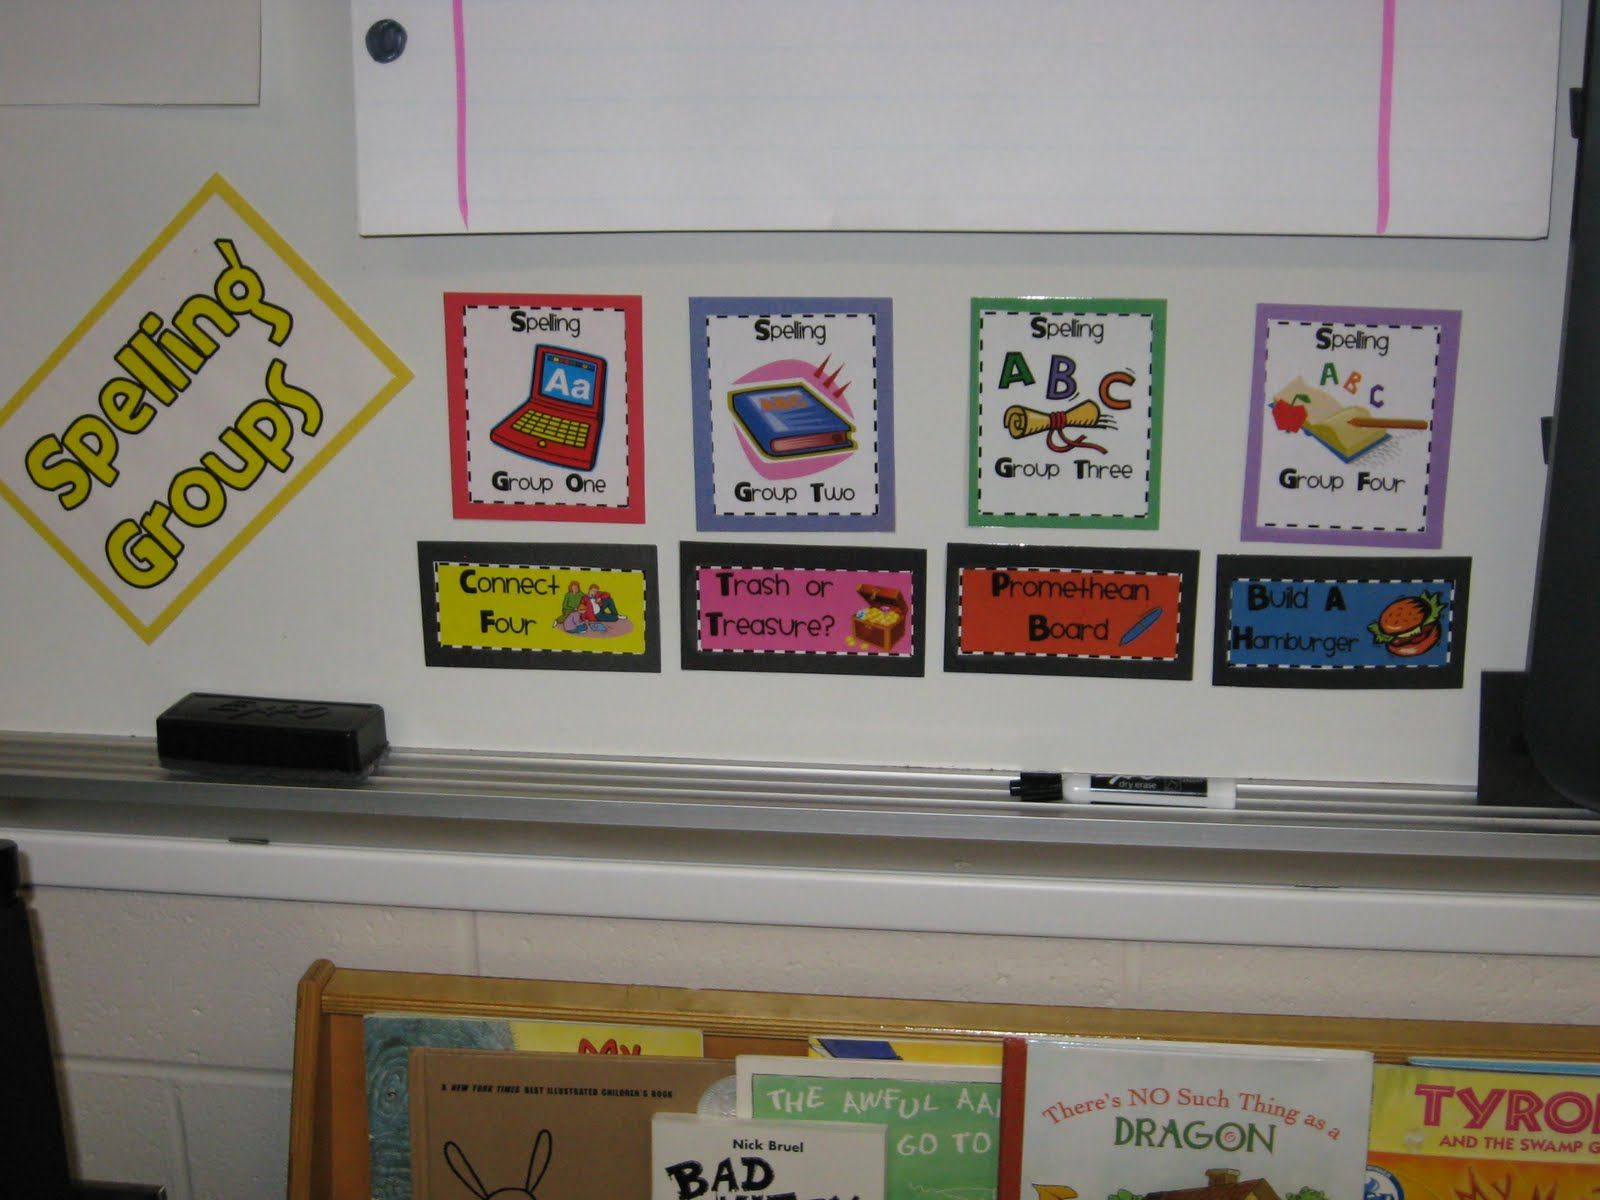 Spelling Rotations (first time seeing this) mandys-tips-4-teachers.blogspot.com